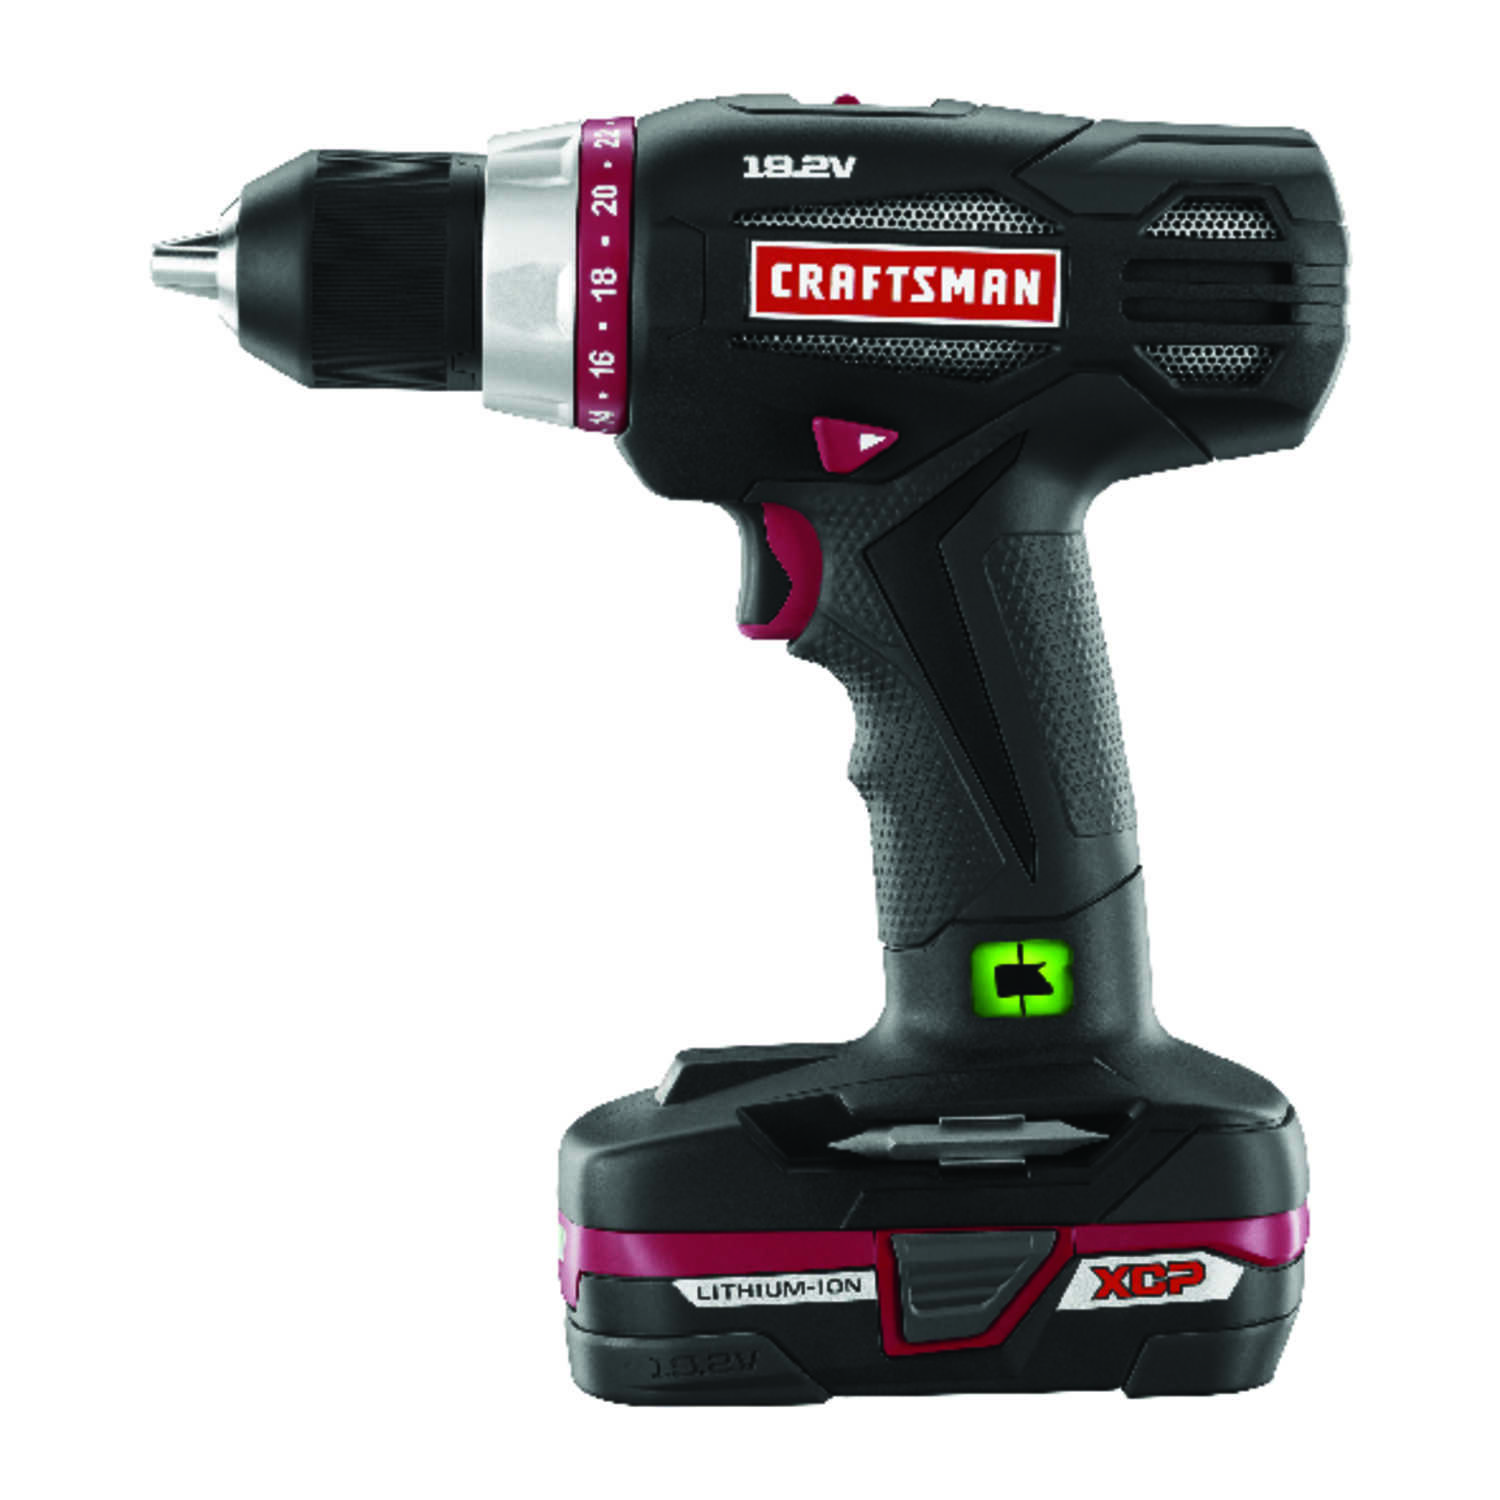 Craftsman C3 19.2 volt 1/2 in. Cordless Drill Kit 1600 rpm 2 - Ace ...